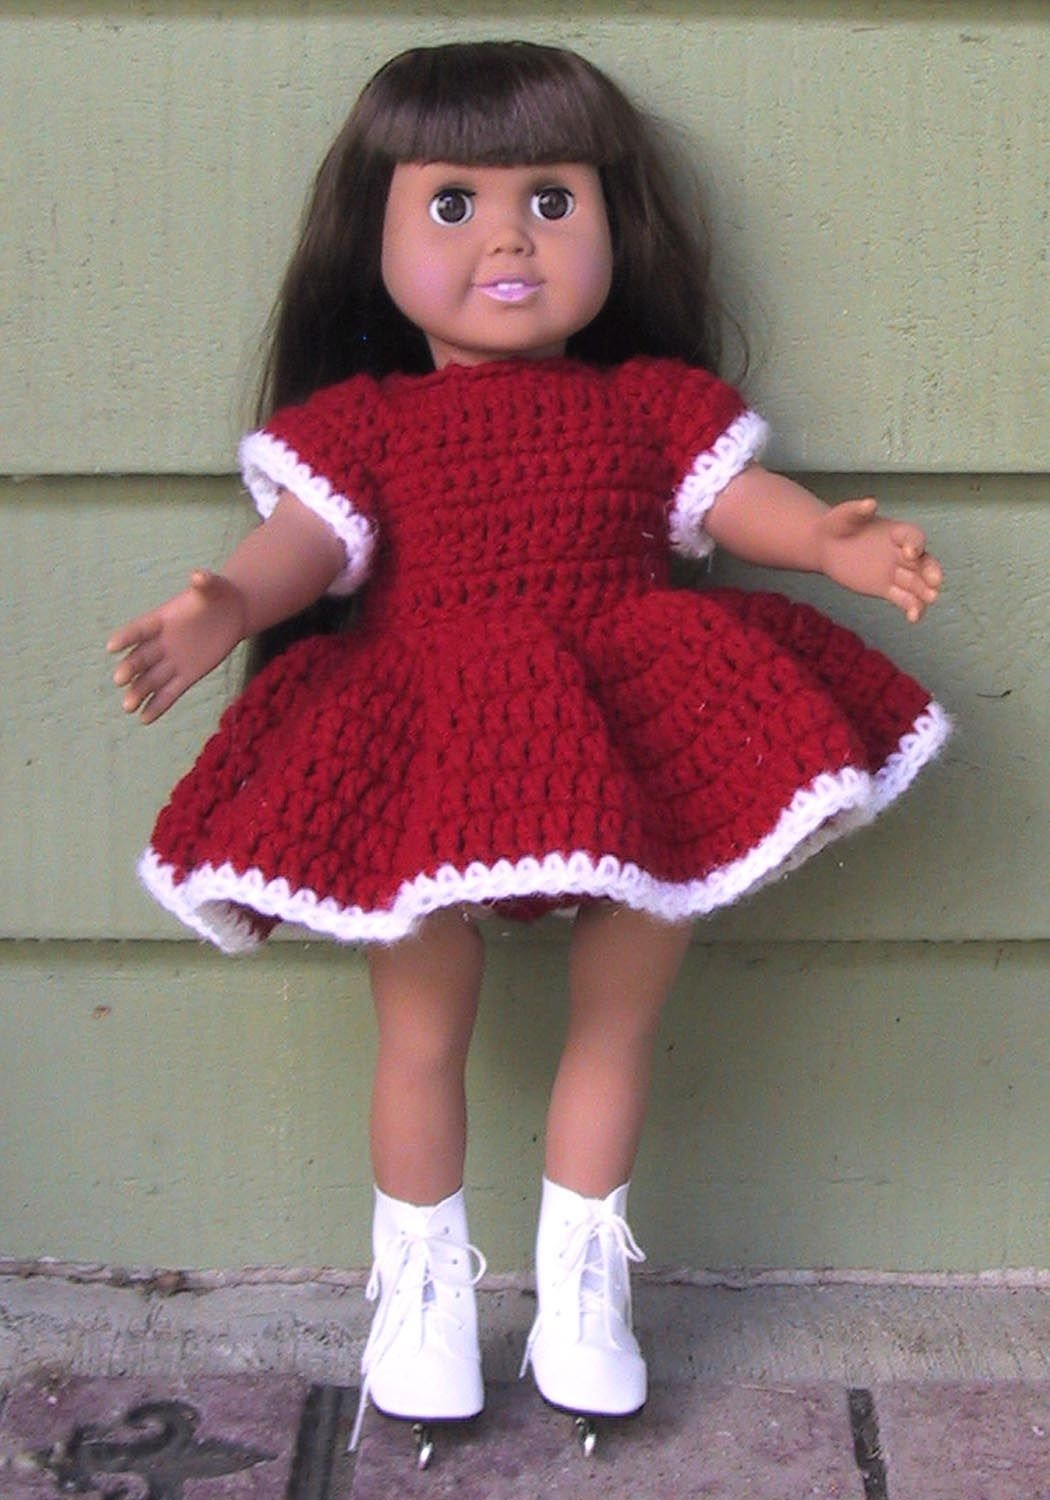 American Girl Dolls And 18 Inch Doll Clothes Free Crochet Patterns - Free Printable Crochet Doll Clothes Patterns For 18 Inch Dolls